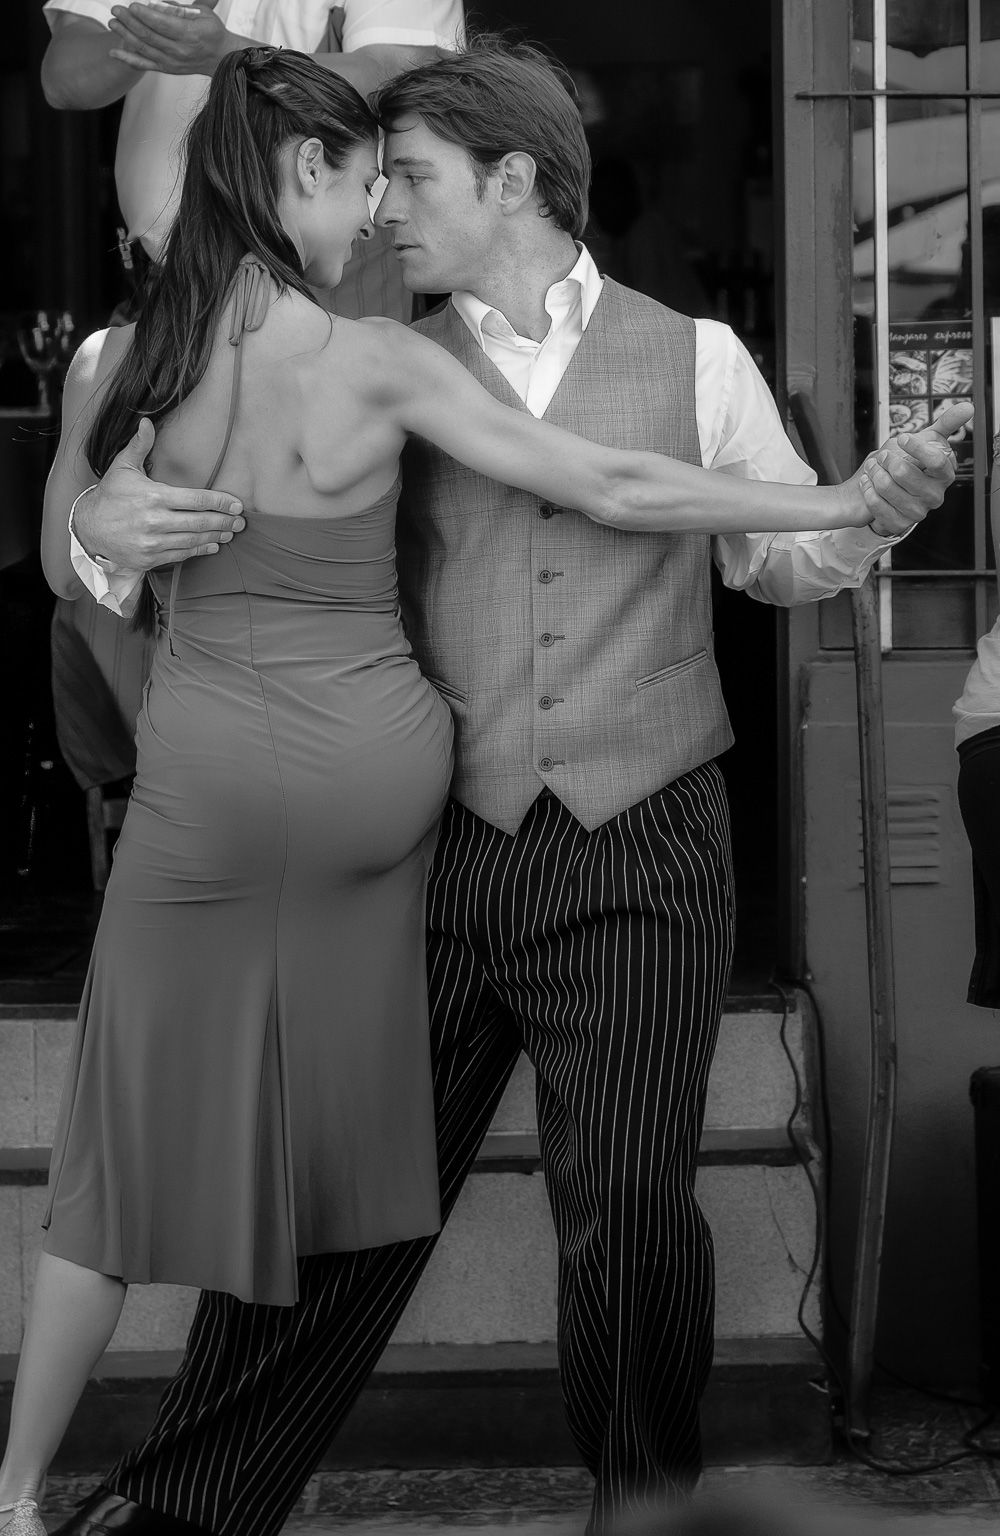 A couple of    performers dancing outside a restaurant    in the streets of the    La Boca    precinct in    Buenos Aires, Argentina   .